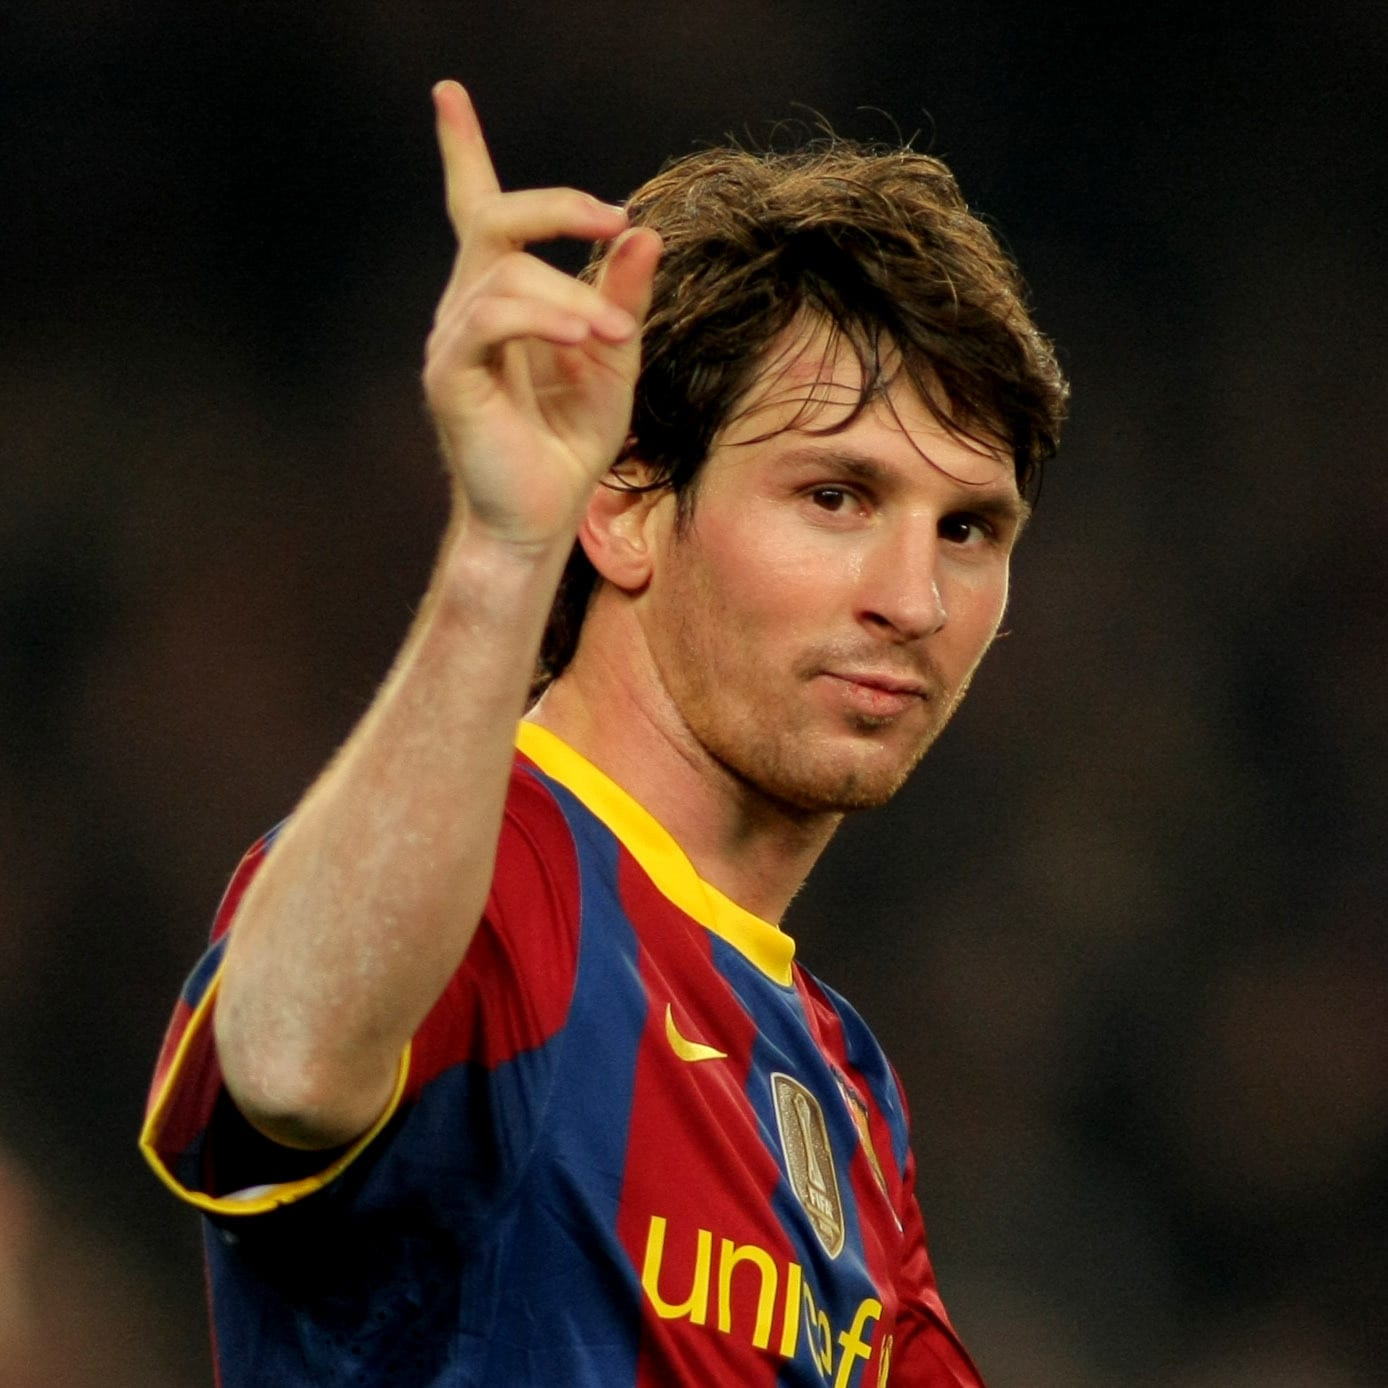 Lionel Messi's Top 10 Most Iconic Hairstyles